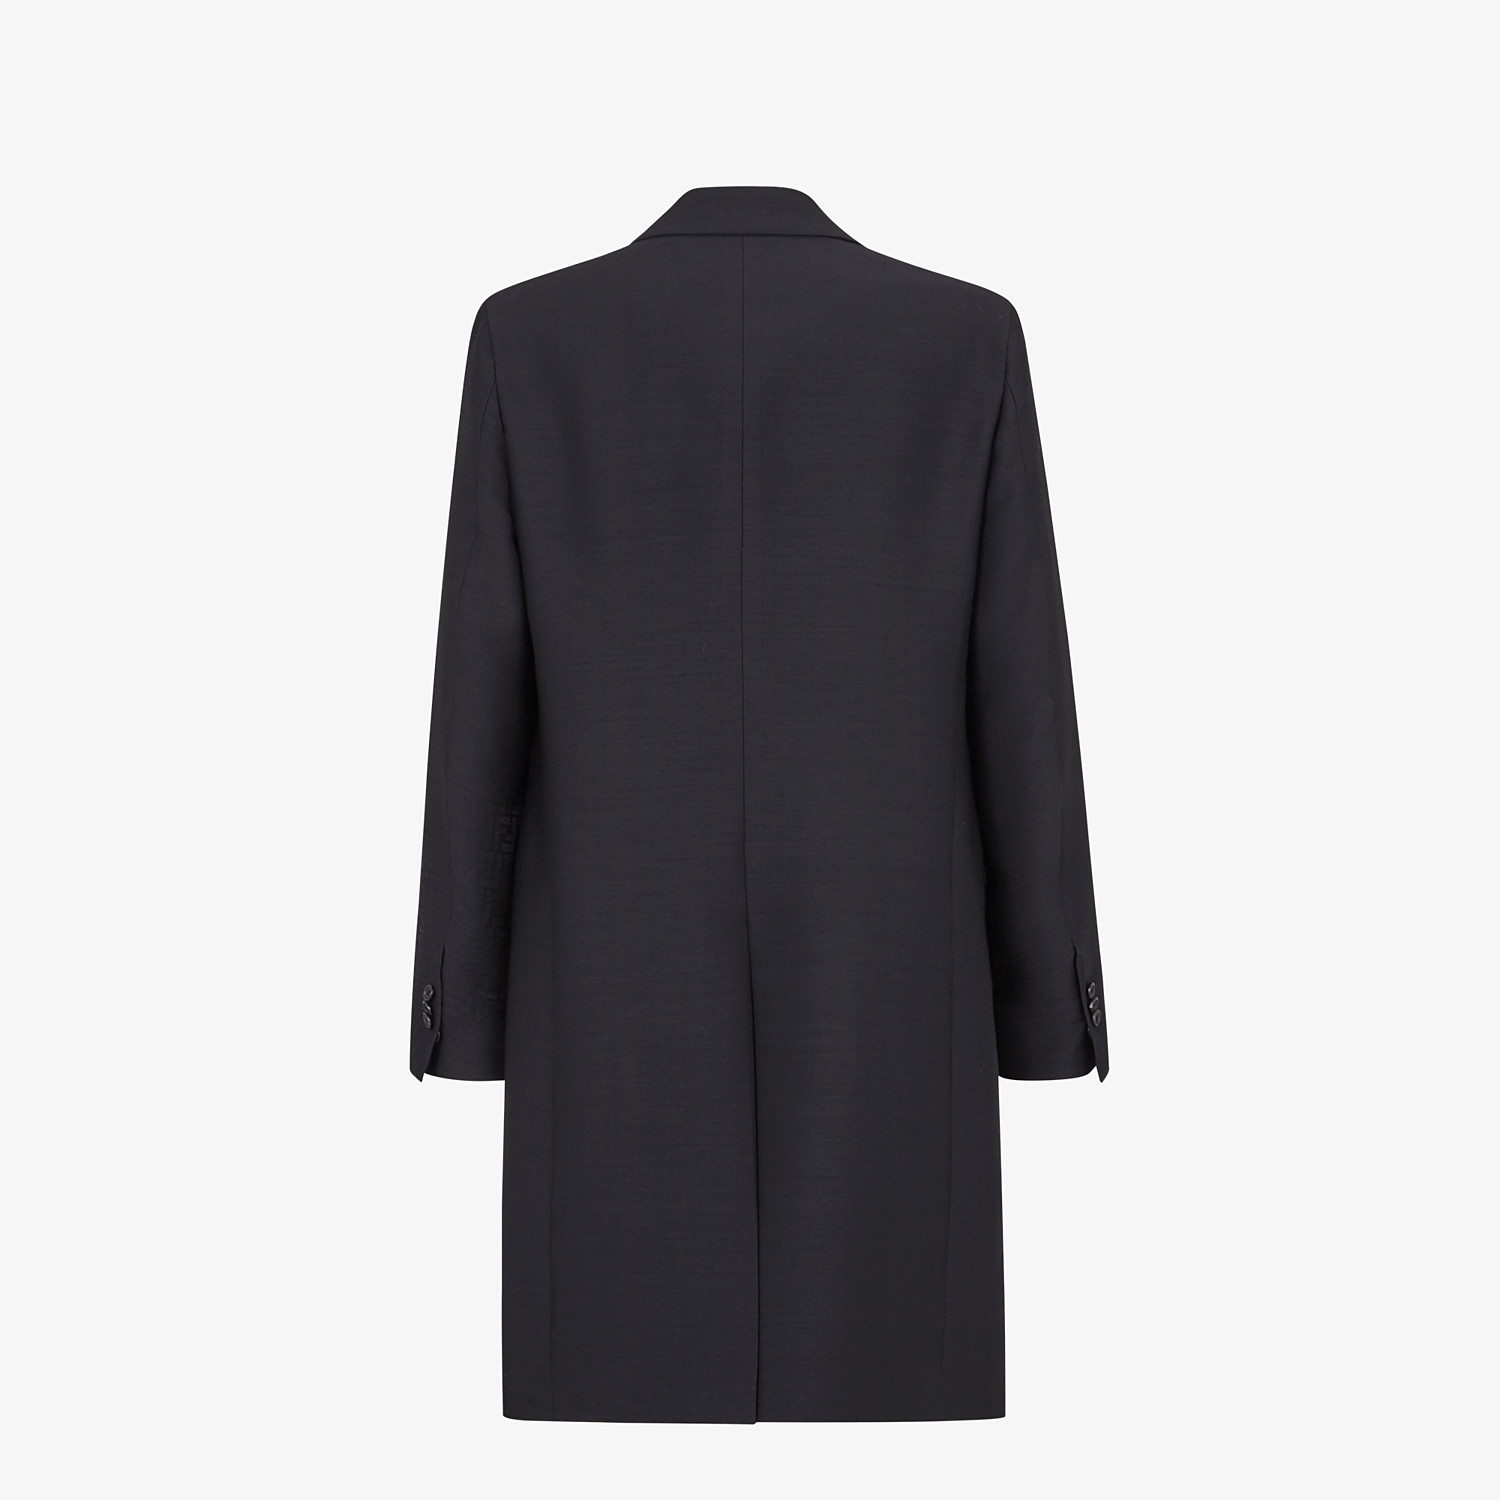 FENDI COAT - Black wool coat - view 2 detail